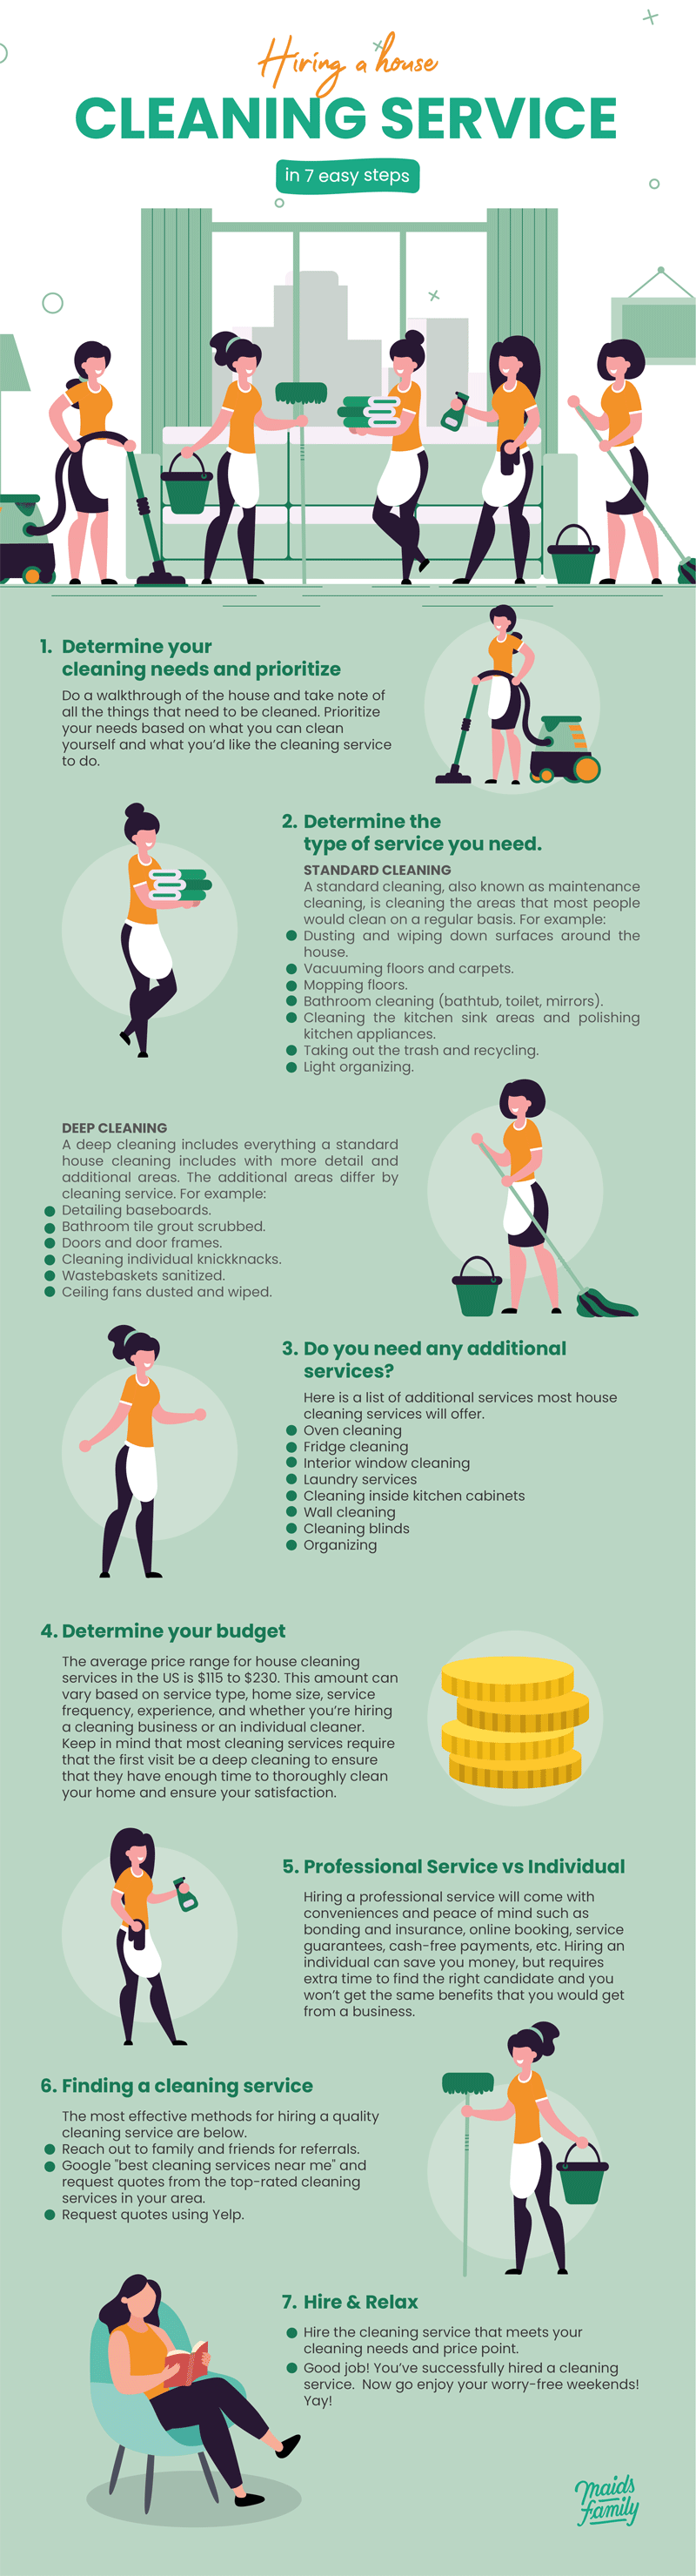 Hiring a House Cleaning Service in 7 Easy Steps